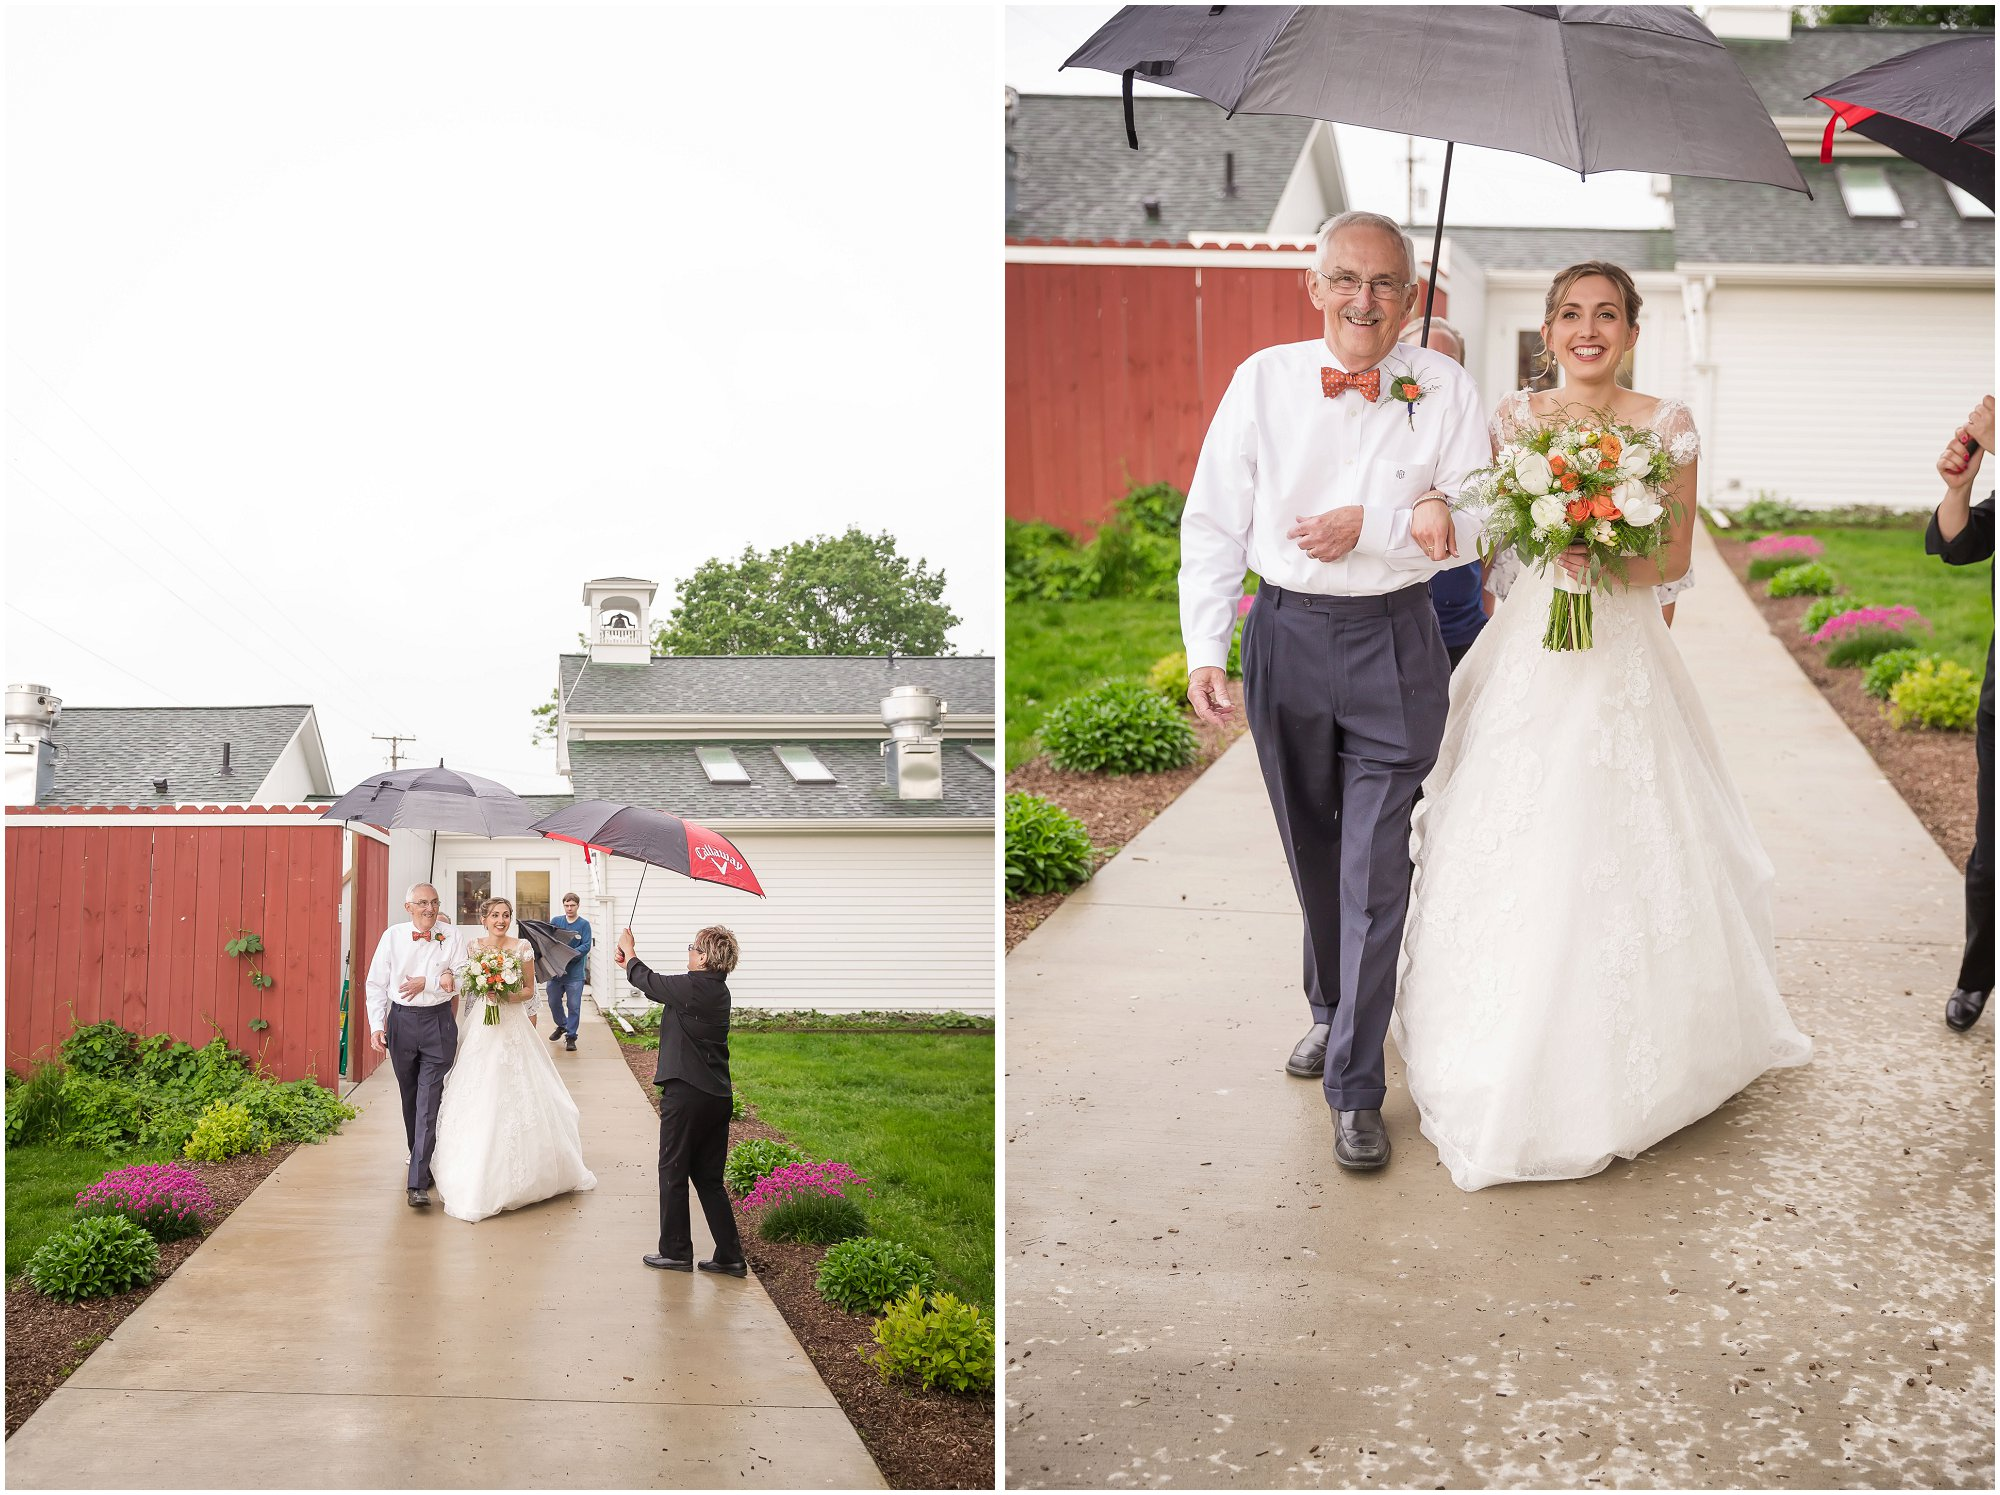 zingermans-cornman-farms-wedding_0873.jpg